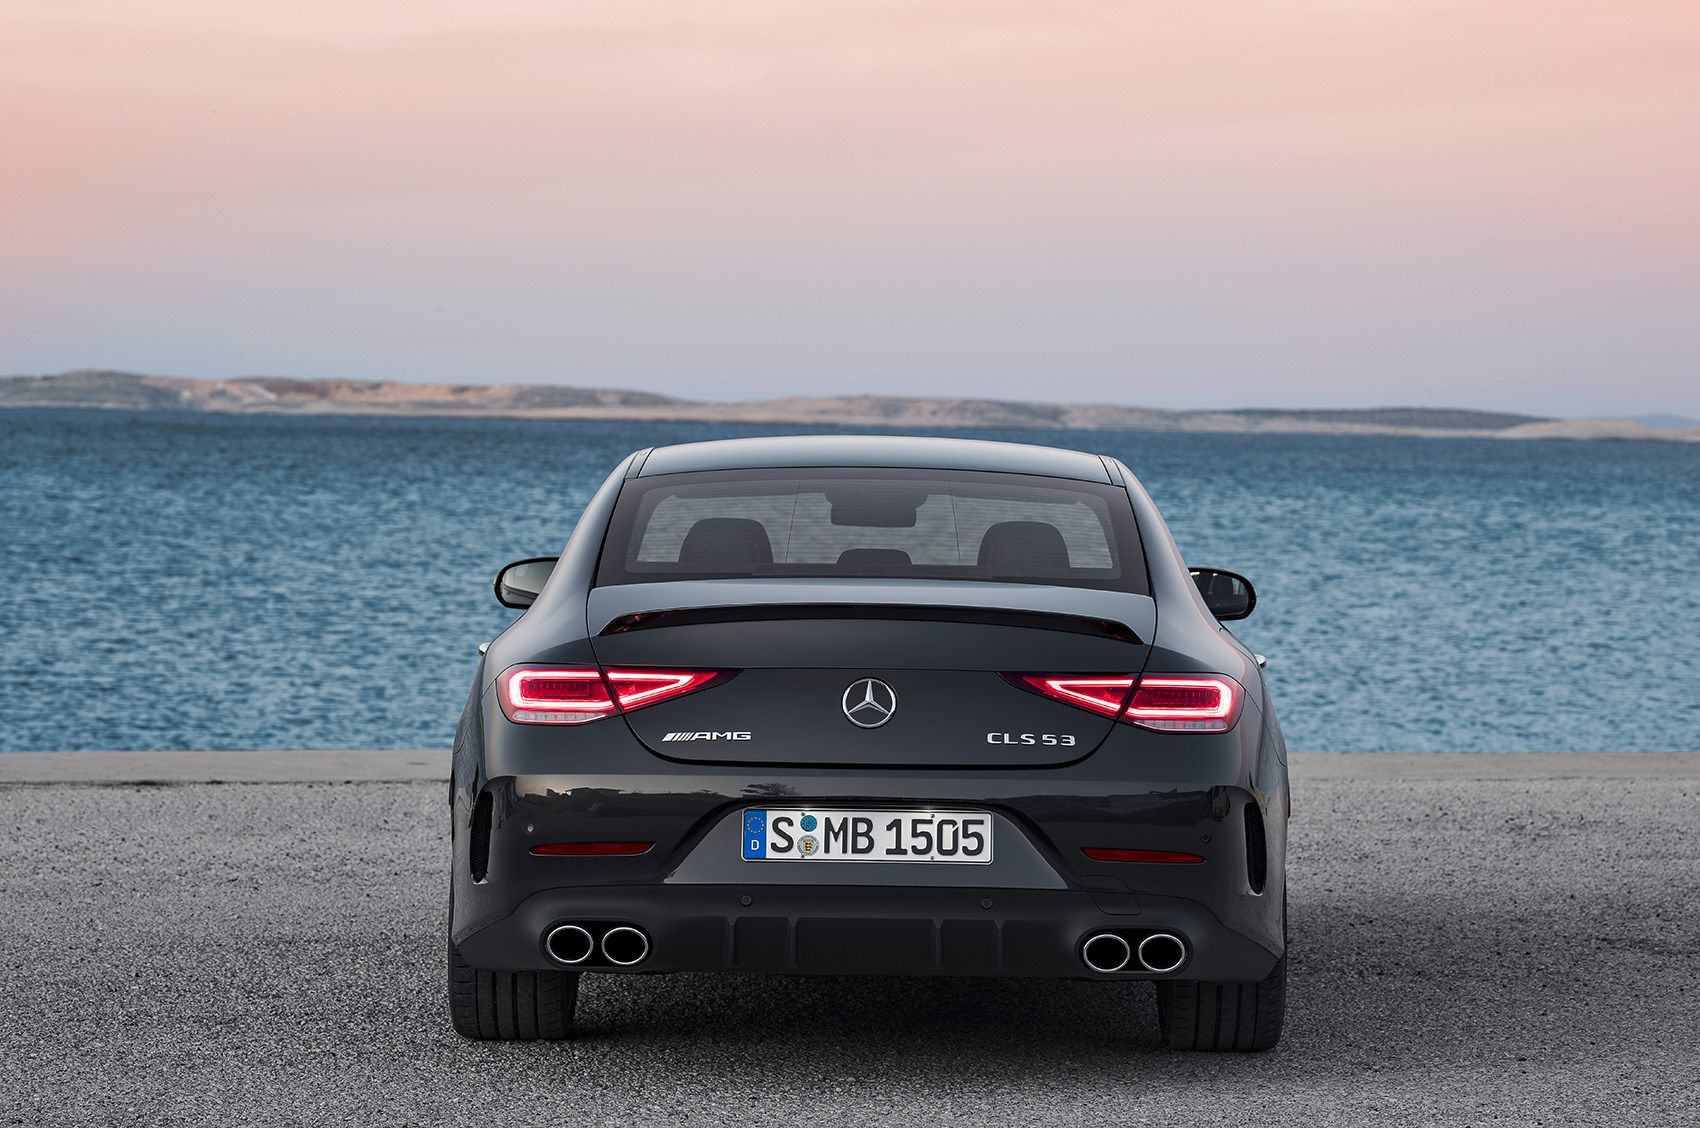 The new Mercedes-AMG CLS 53 a new performance hero